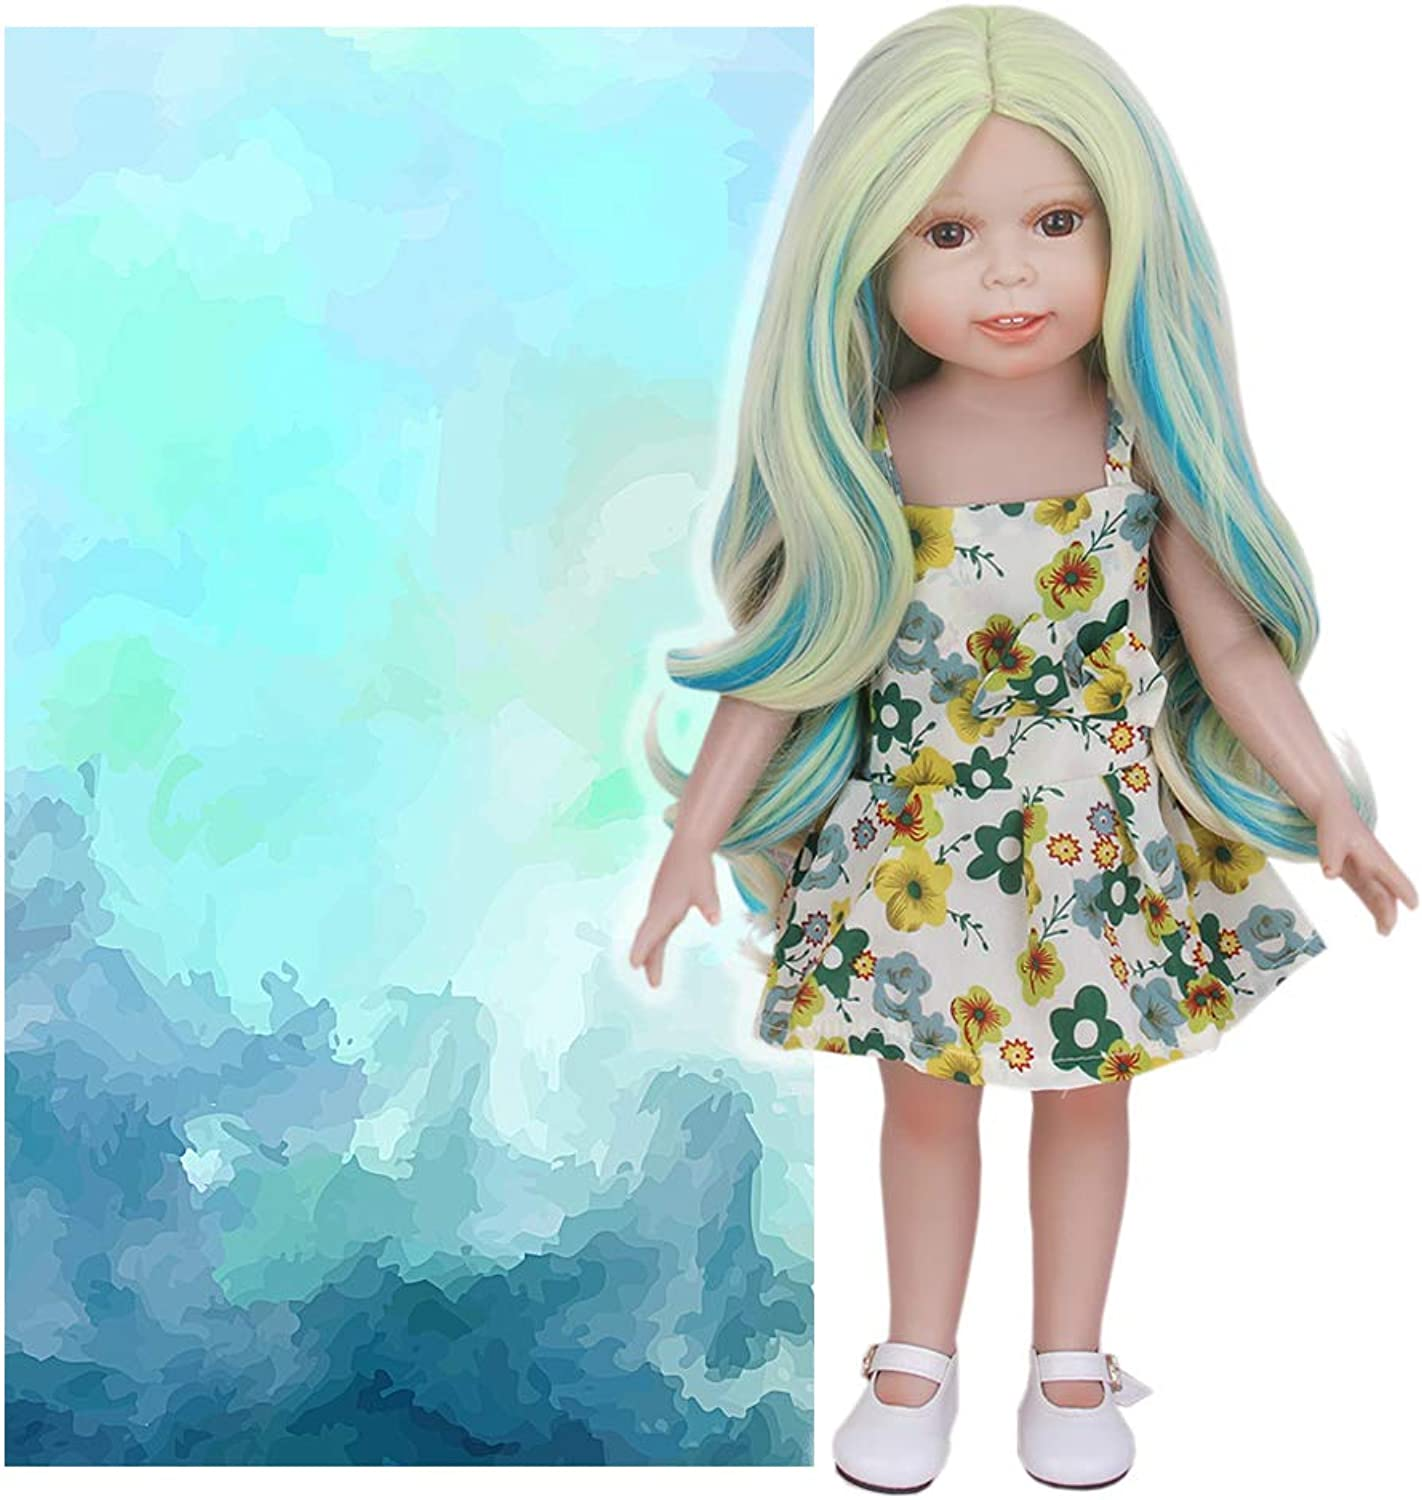 Neo Blythe - Country Summer [Blythe Shop Exclusive] (Japan Import)